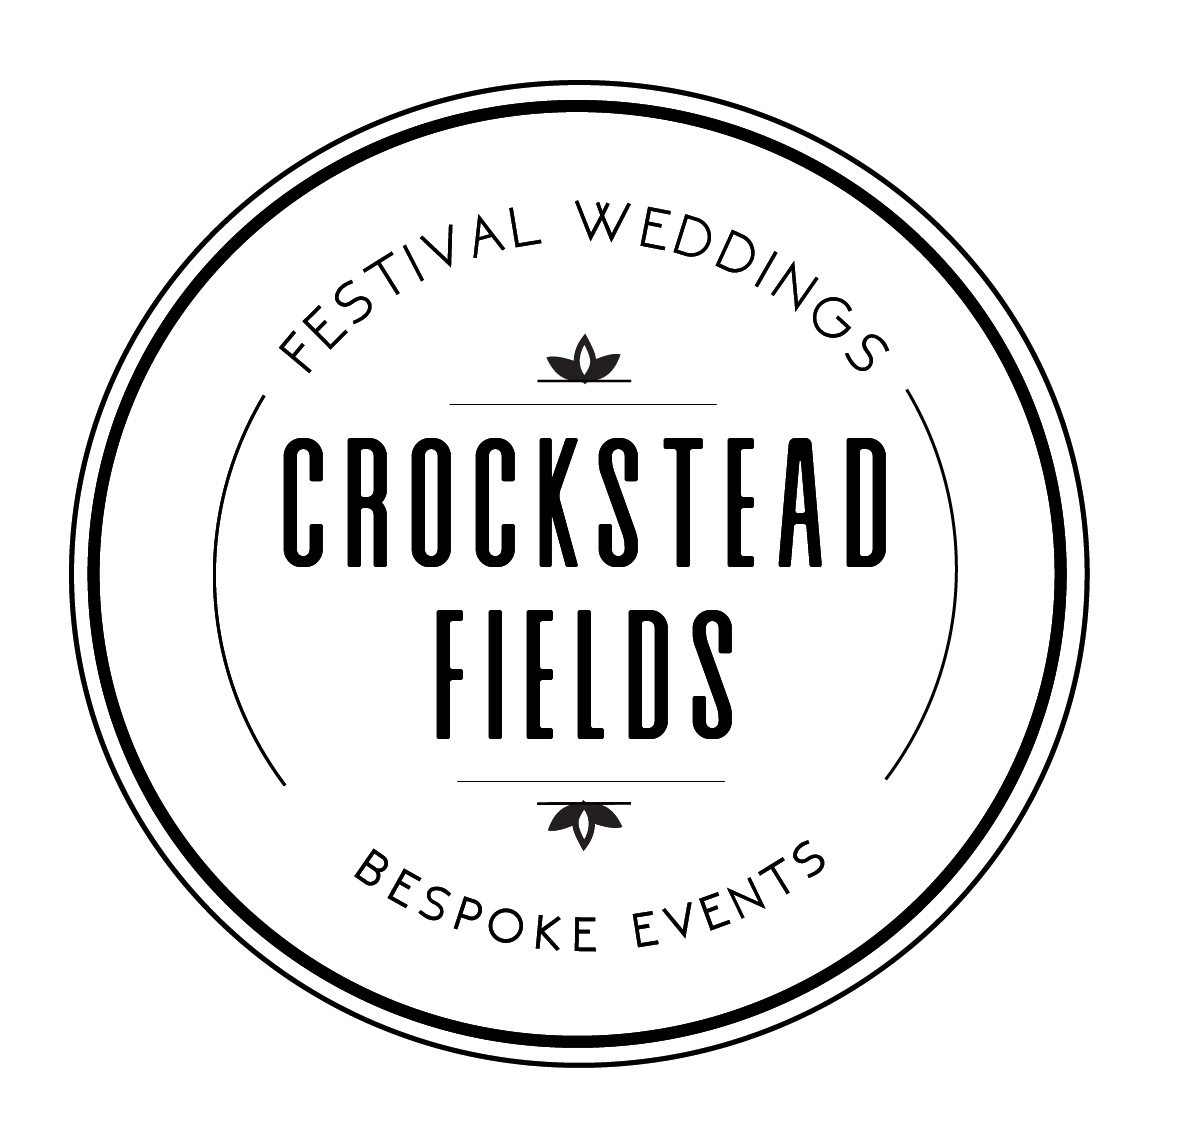 CROCKSTEAD FIELDS